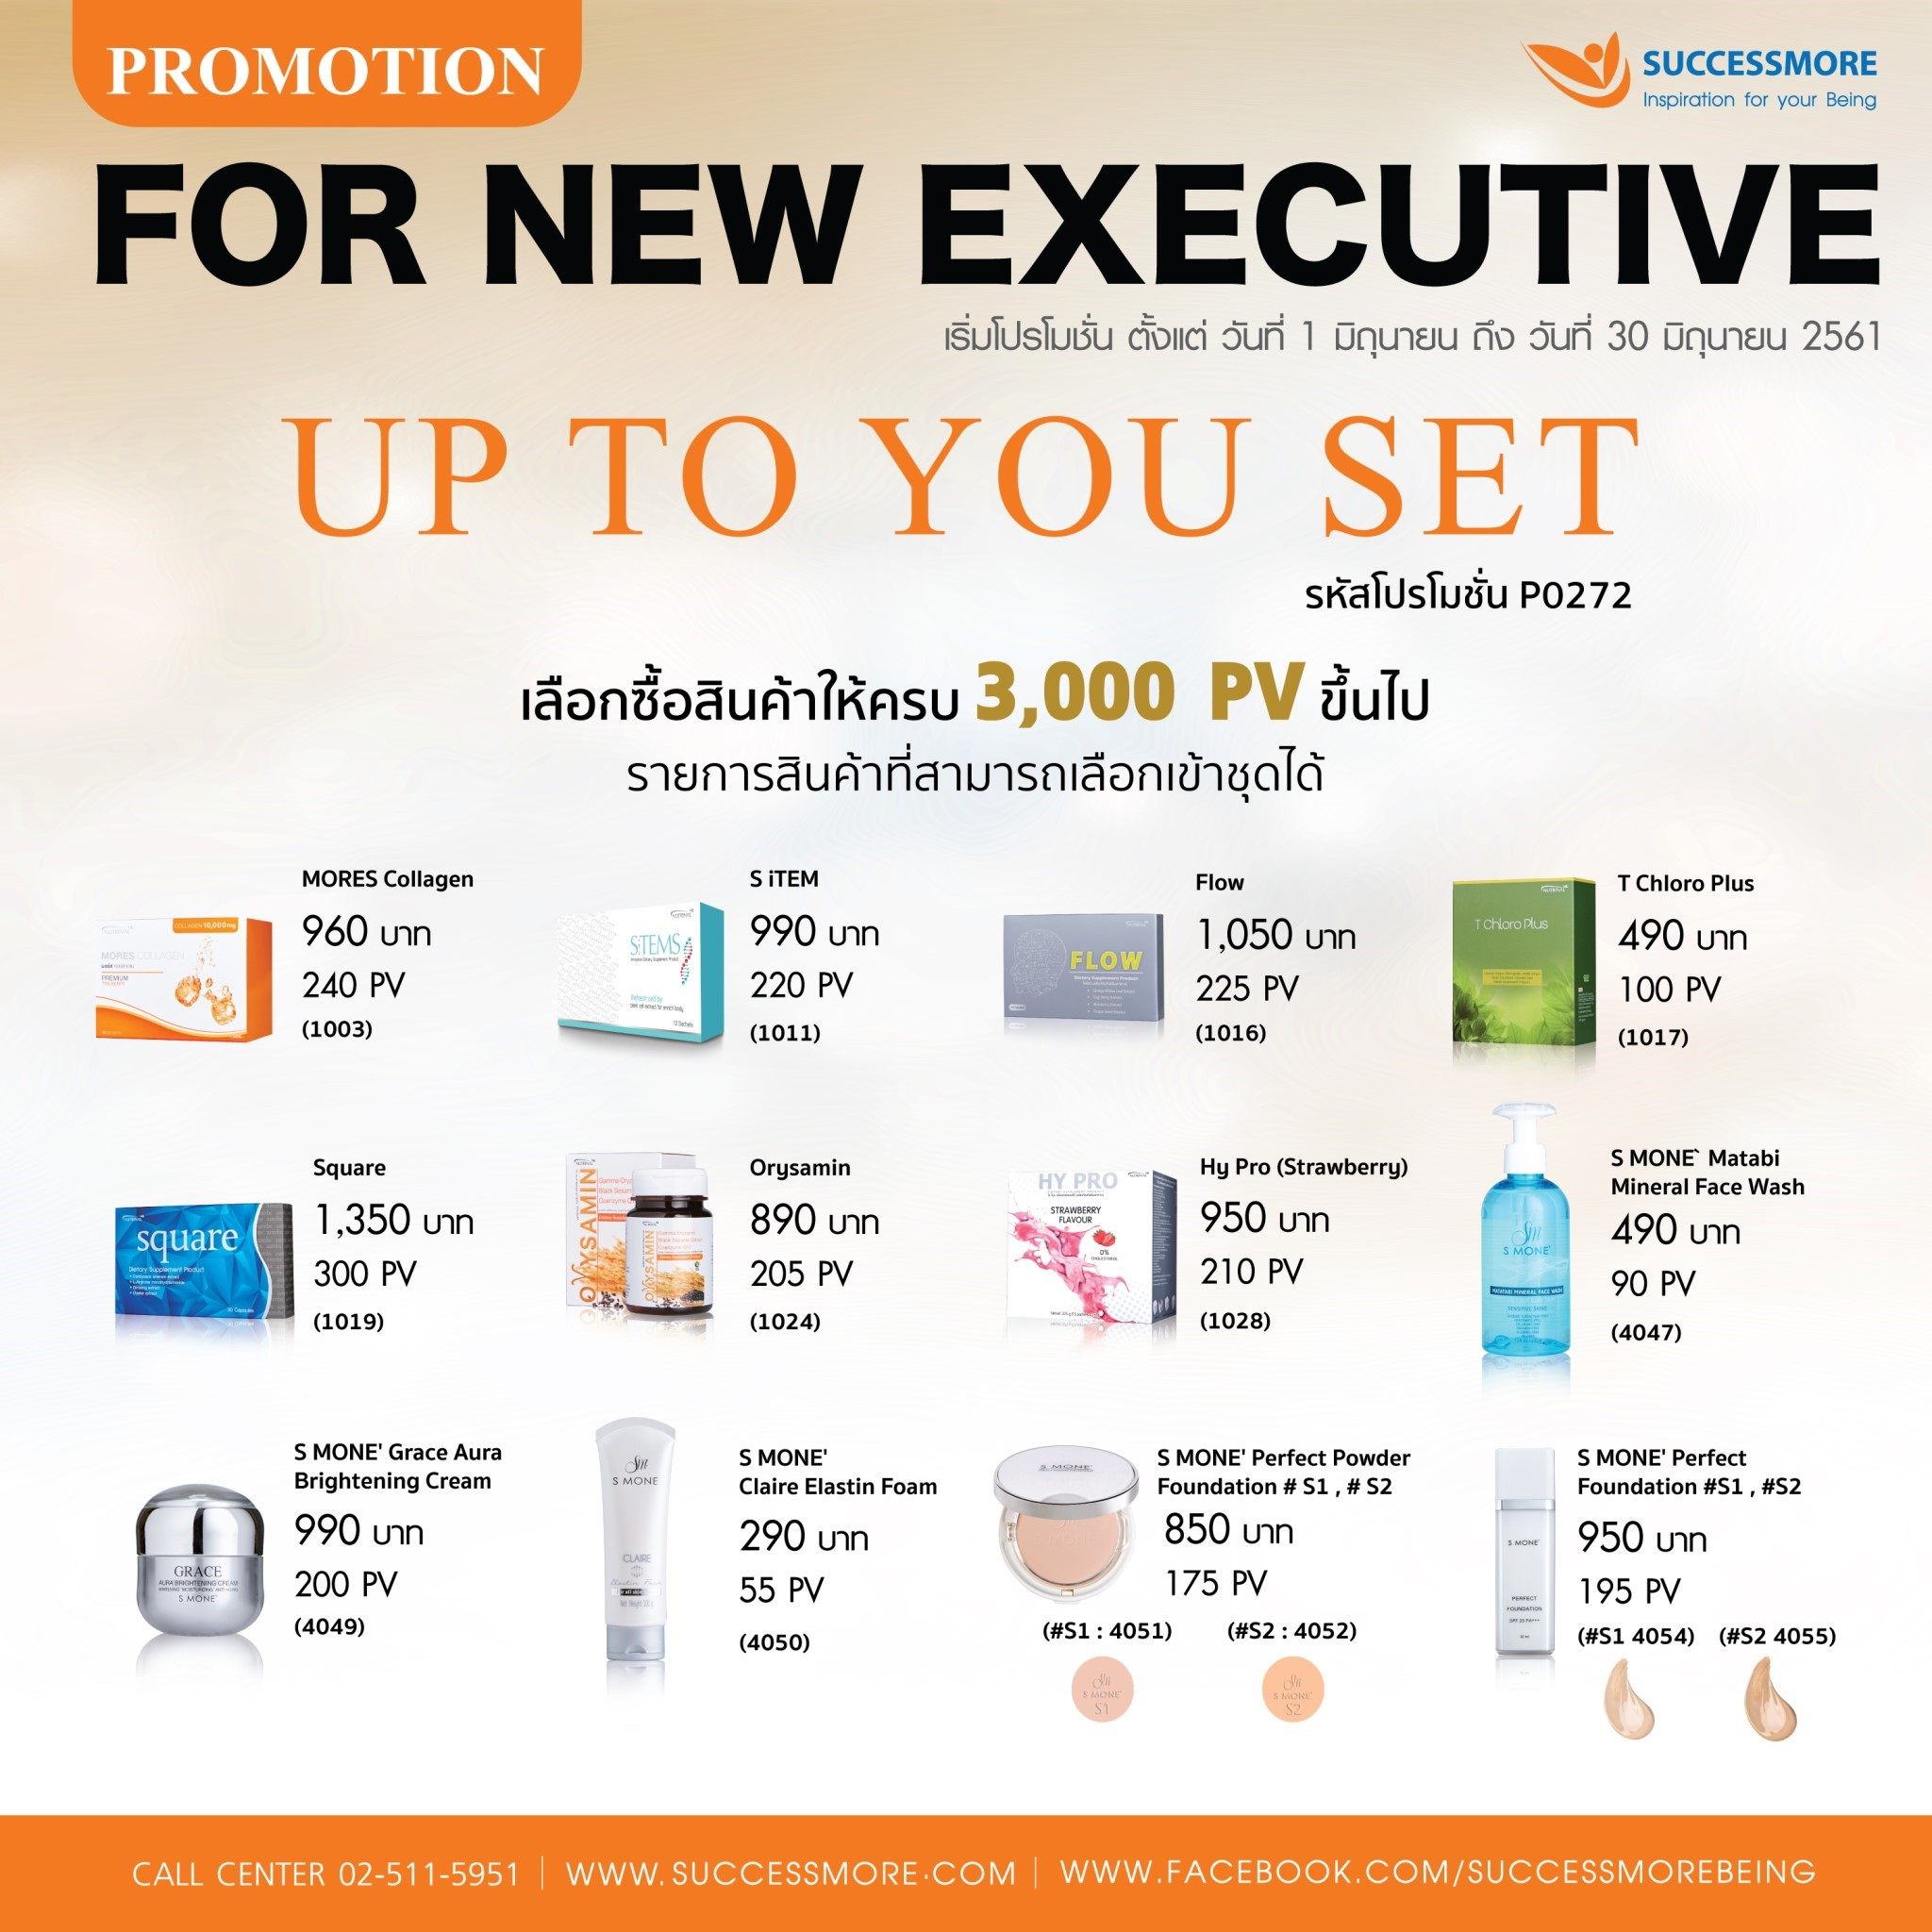 SUCCESSMORE PROMOTION FOR NEW EXECUTIVE (2)